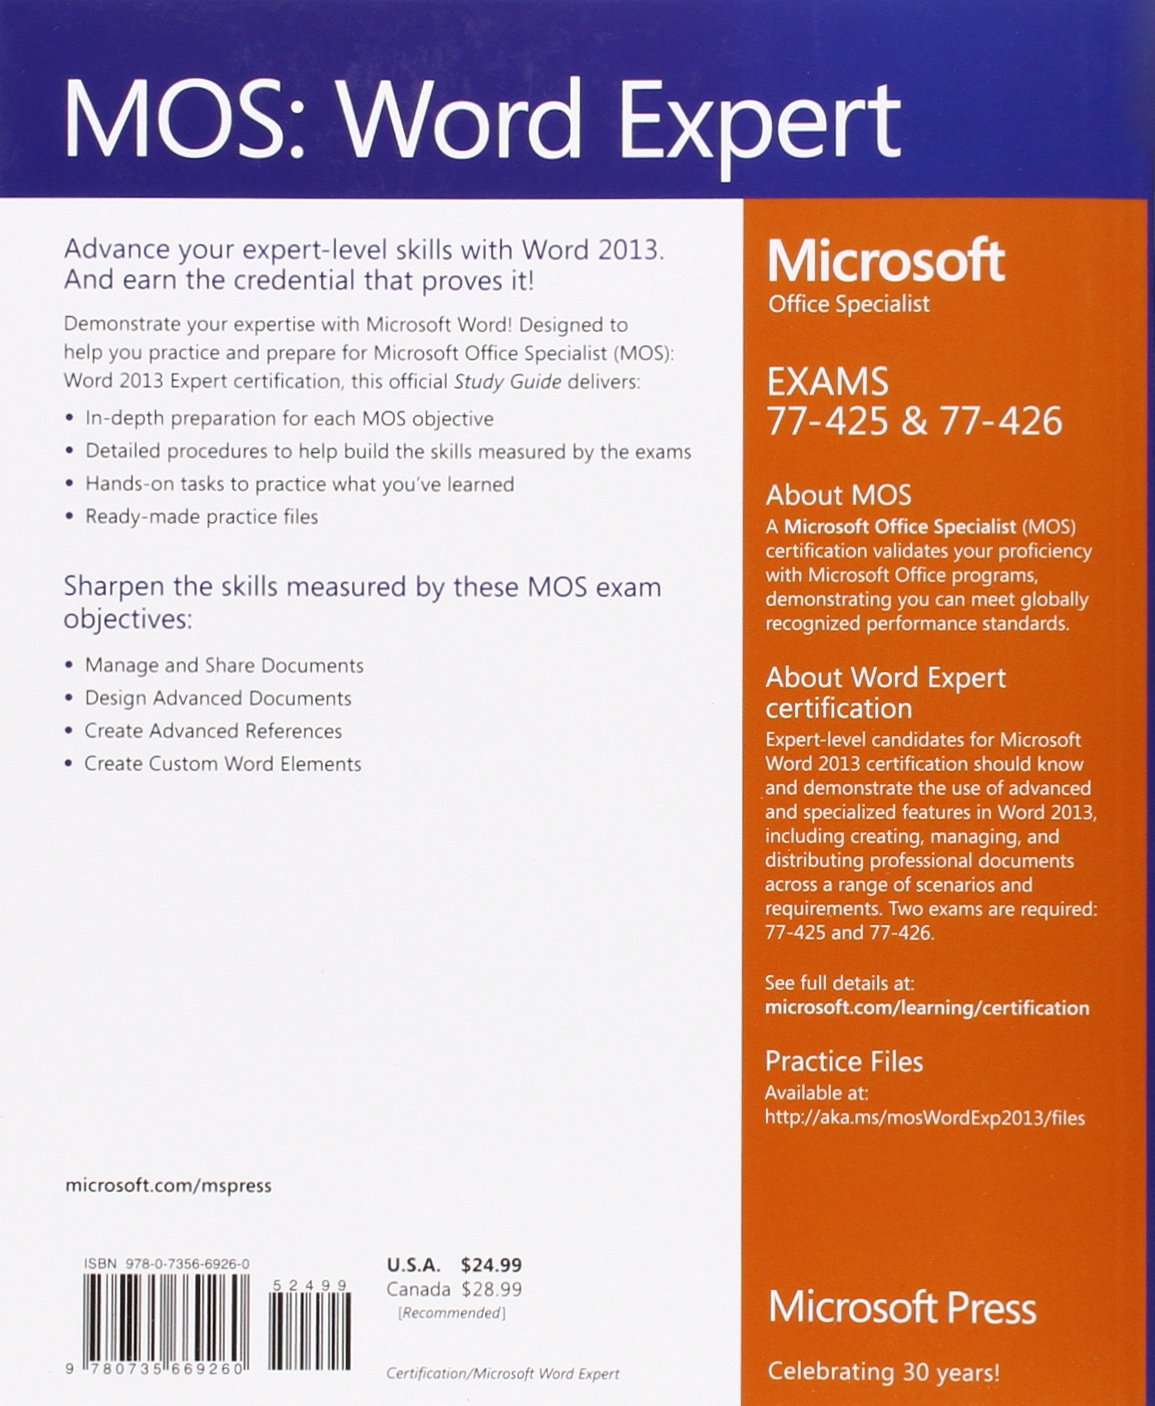 MOS 2013 Study Guide for Microsoft Word Expert (Mos Study Guide):  Amazon.co.uk: John Pierce: 9780735669260: Books